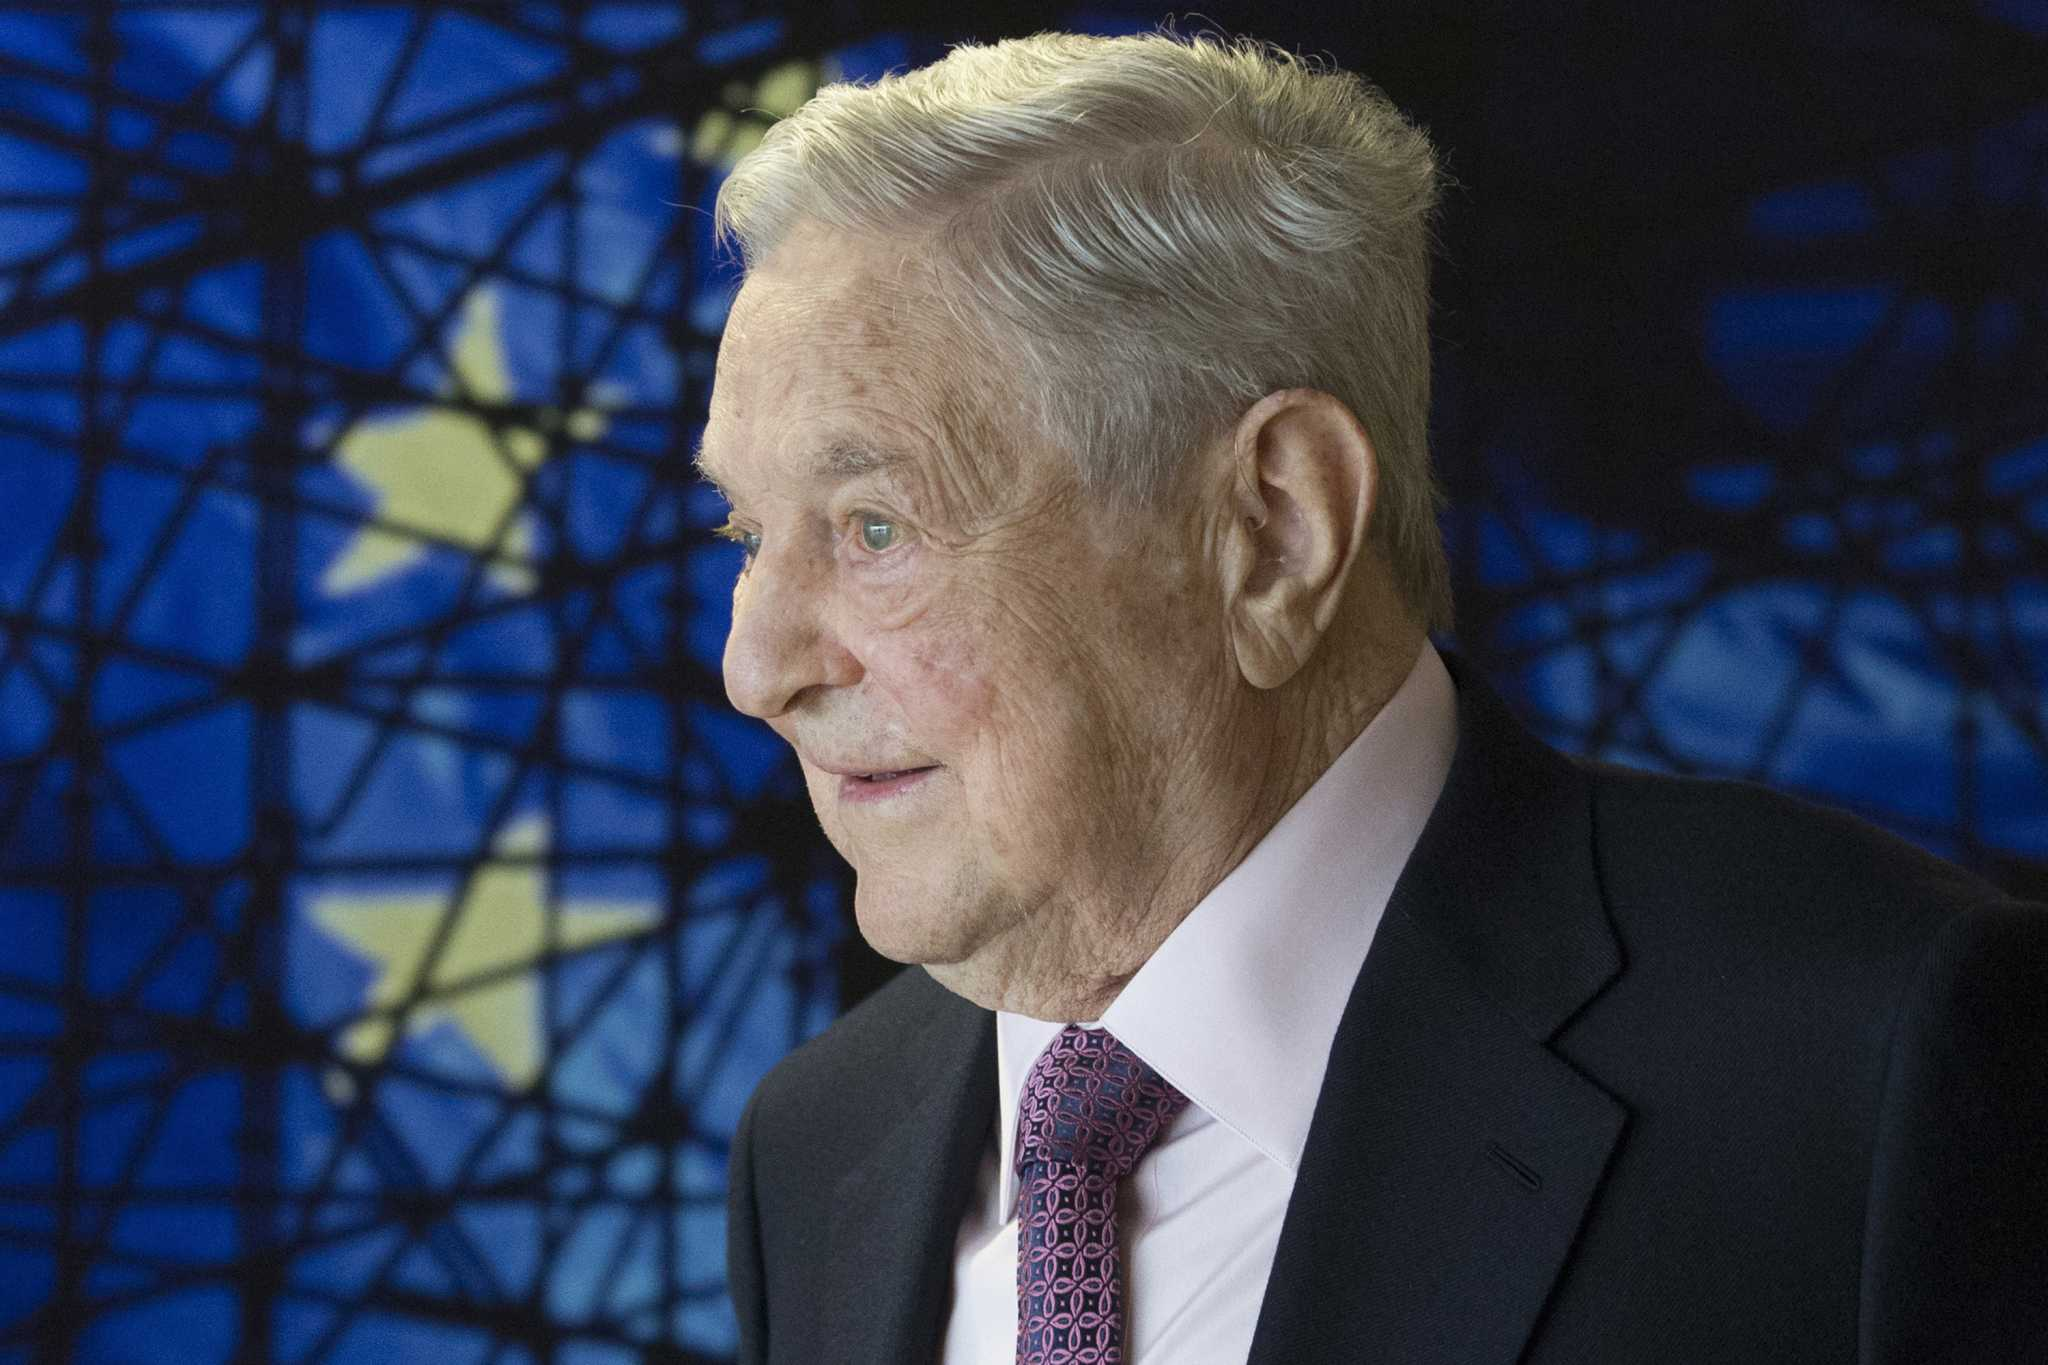 Connelly: Are Republican smears against Soros fanning anti-Semitism in America?